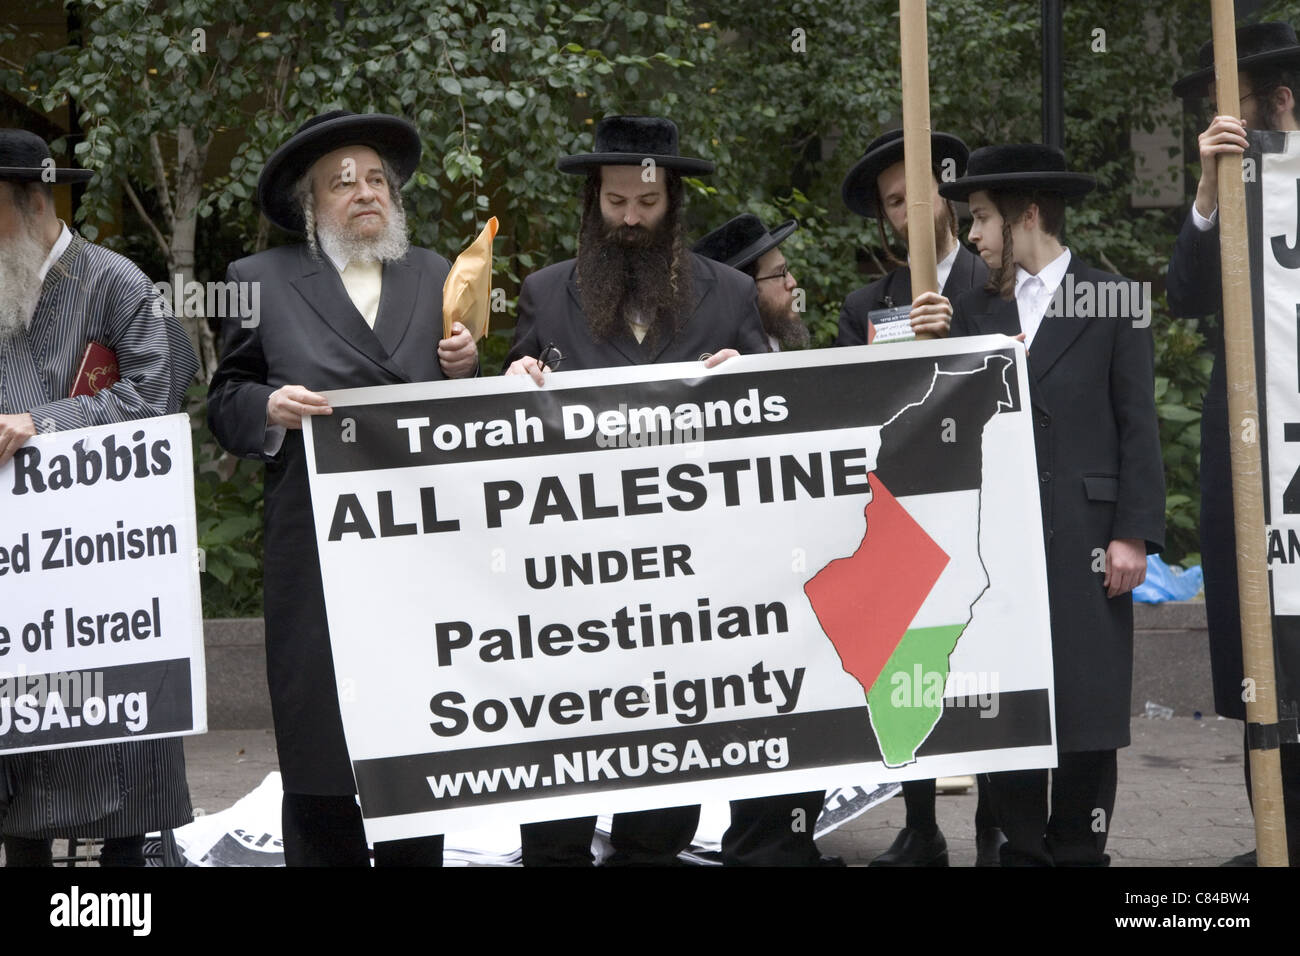 Ultra-Orthodox Jewish Rabbis demonstrate near the UN in NYC to free Palestine and dismantle the state of Israel. - Stock Image